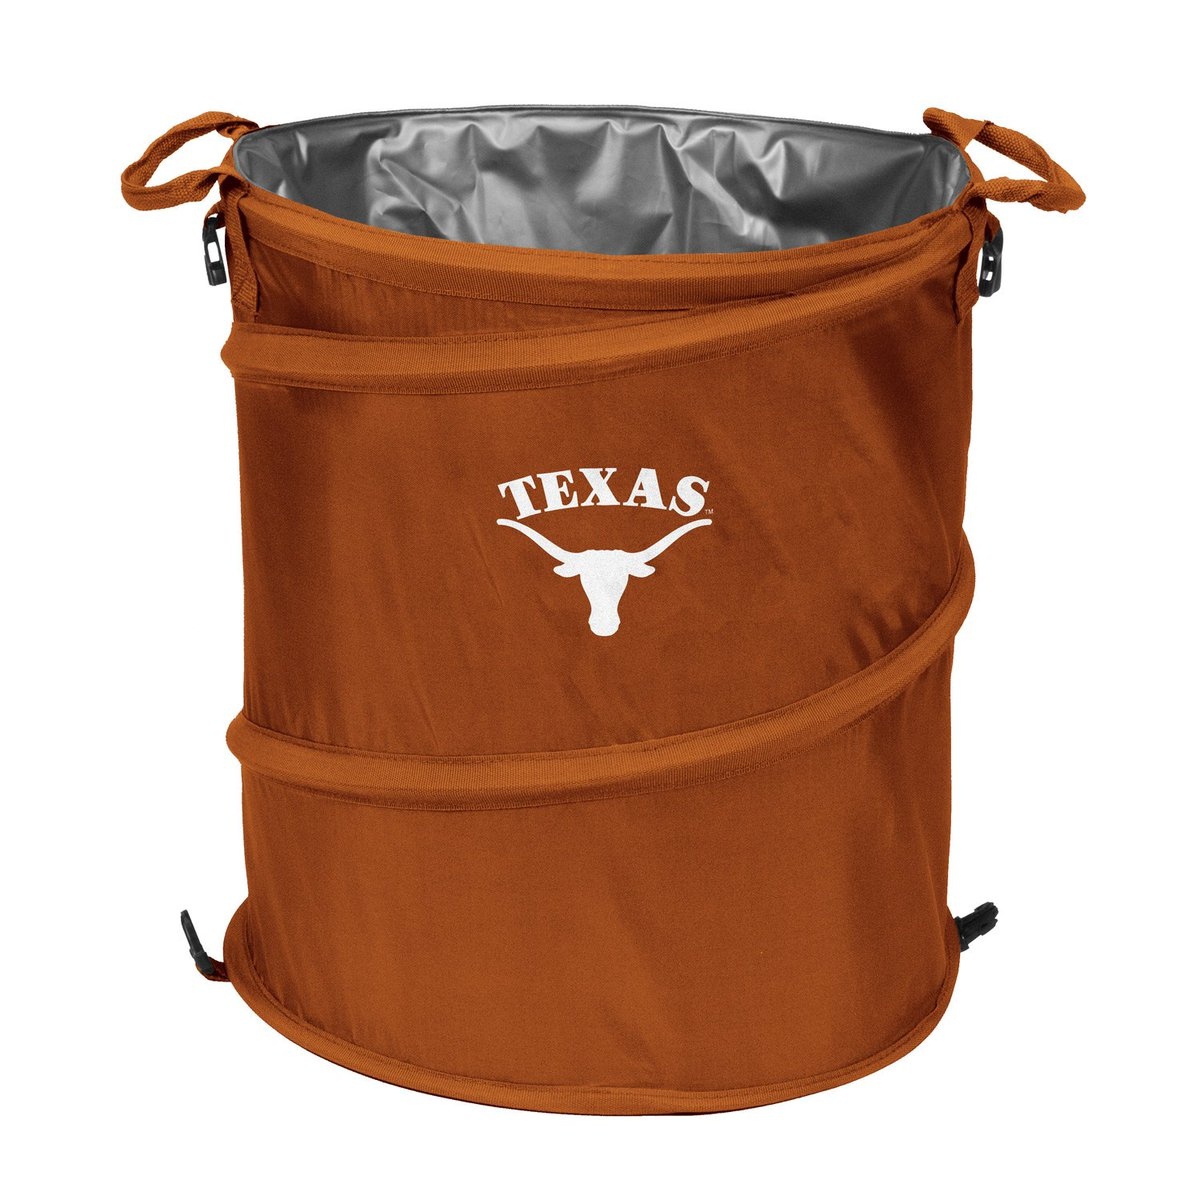 Texas Collapsible 3-in-1#WednesdayWisdomhttps://www.shareasale.com/m-pr.cfm?merchantID=23631&userID=916198&productID=651758971&afftrack=newtexans_twitter …